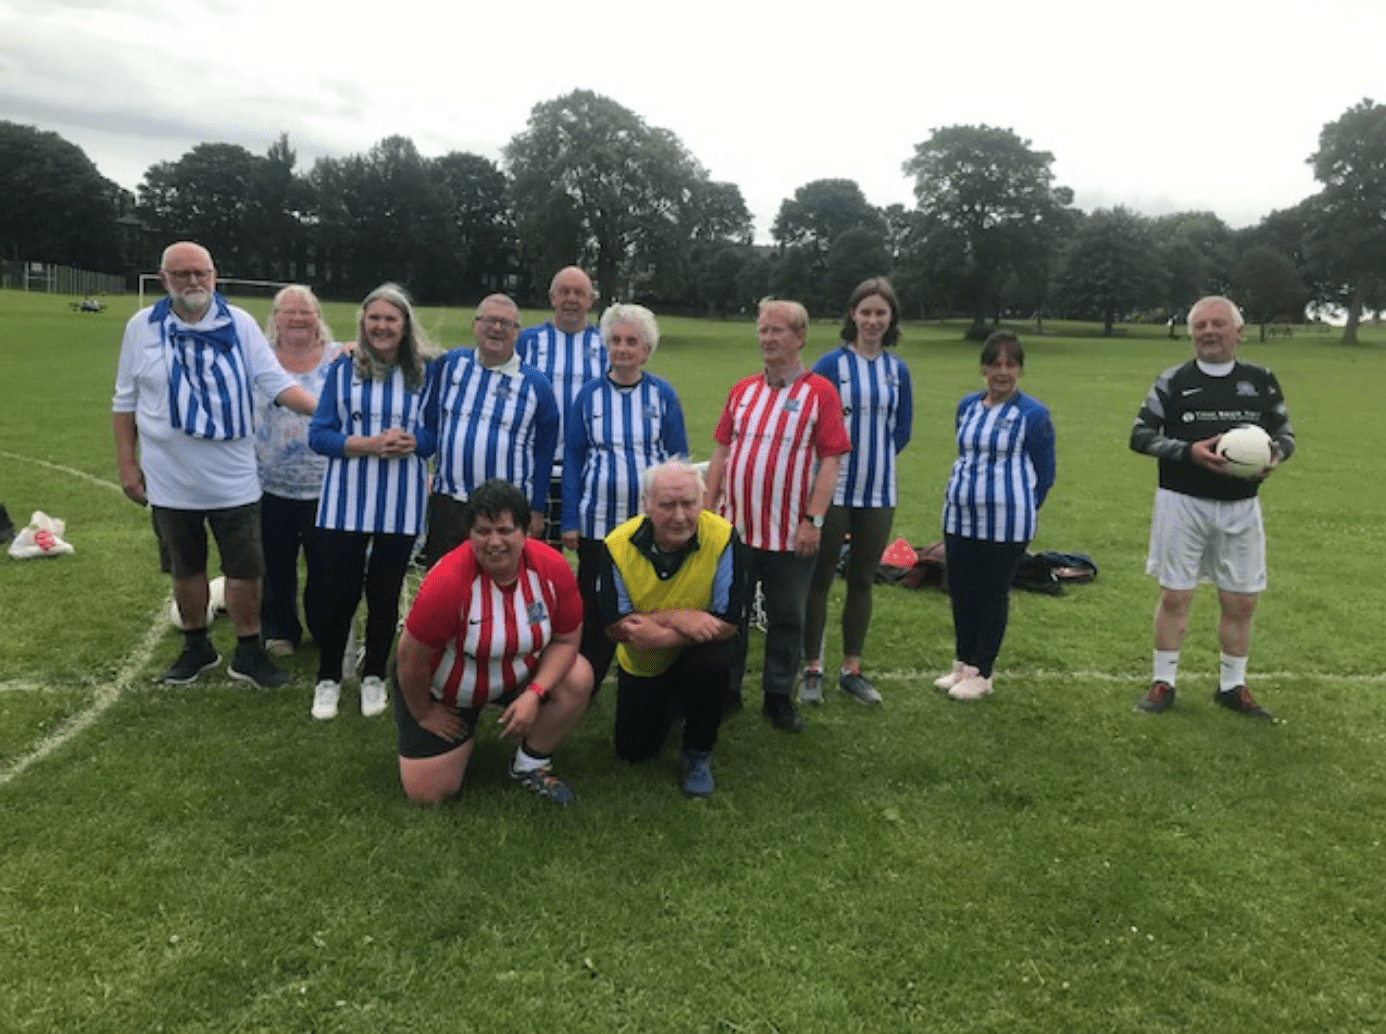 Bramley Walking Wanderers- 'On the ball' and in the press!